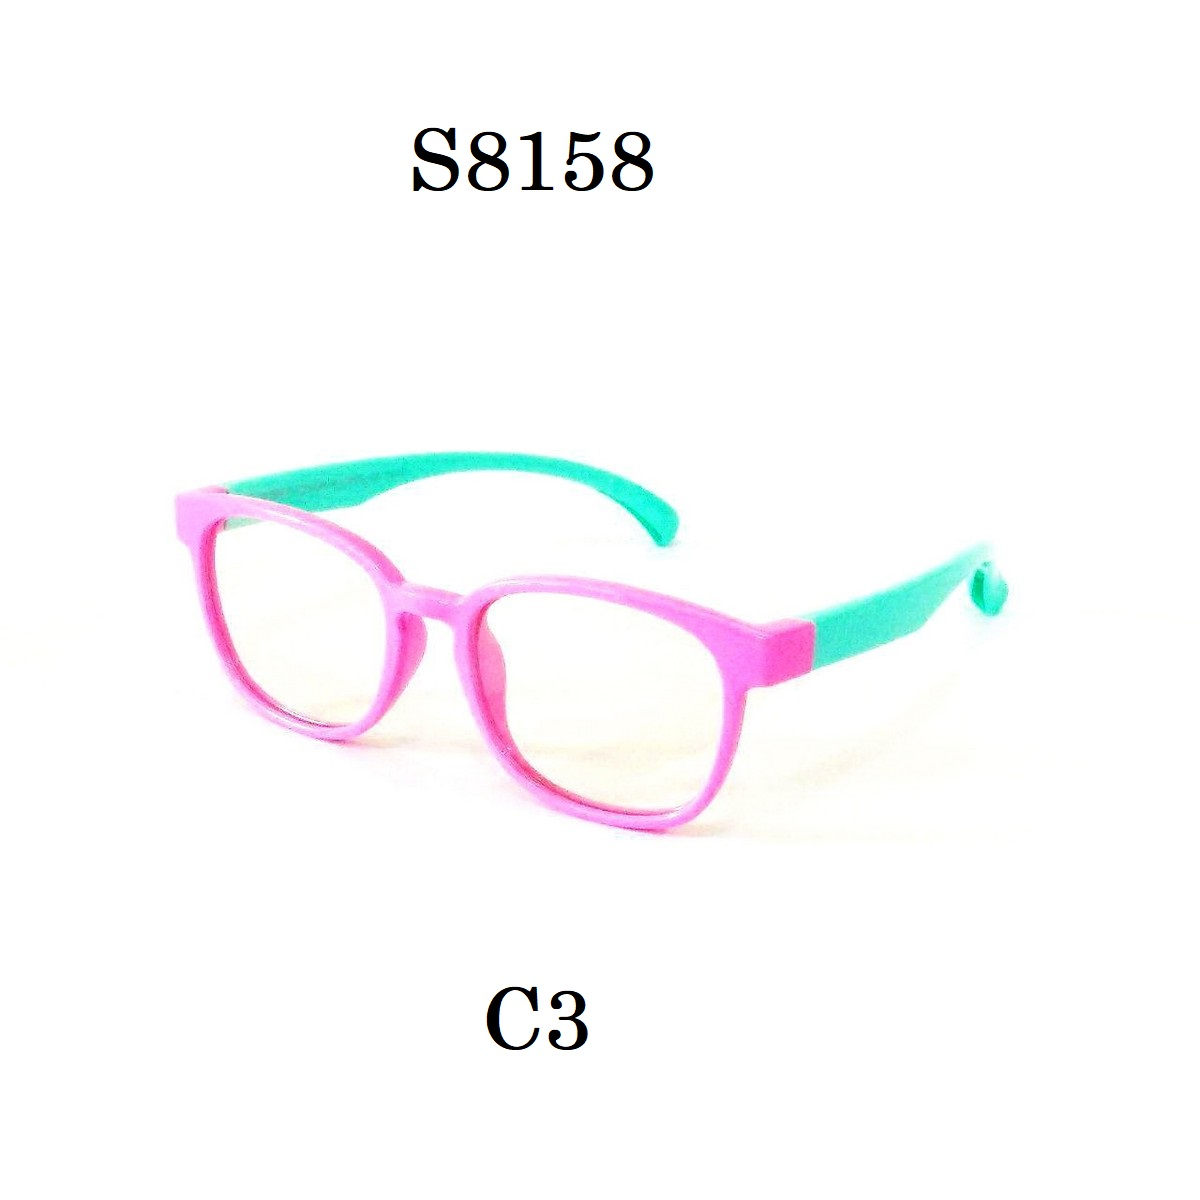 Kids Blue Light Blocker Computer Glasses Anti Blue Ray Eyeglasses S8158C3